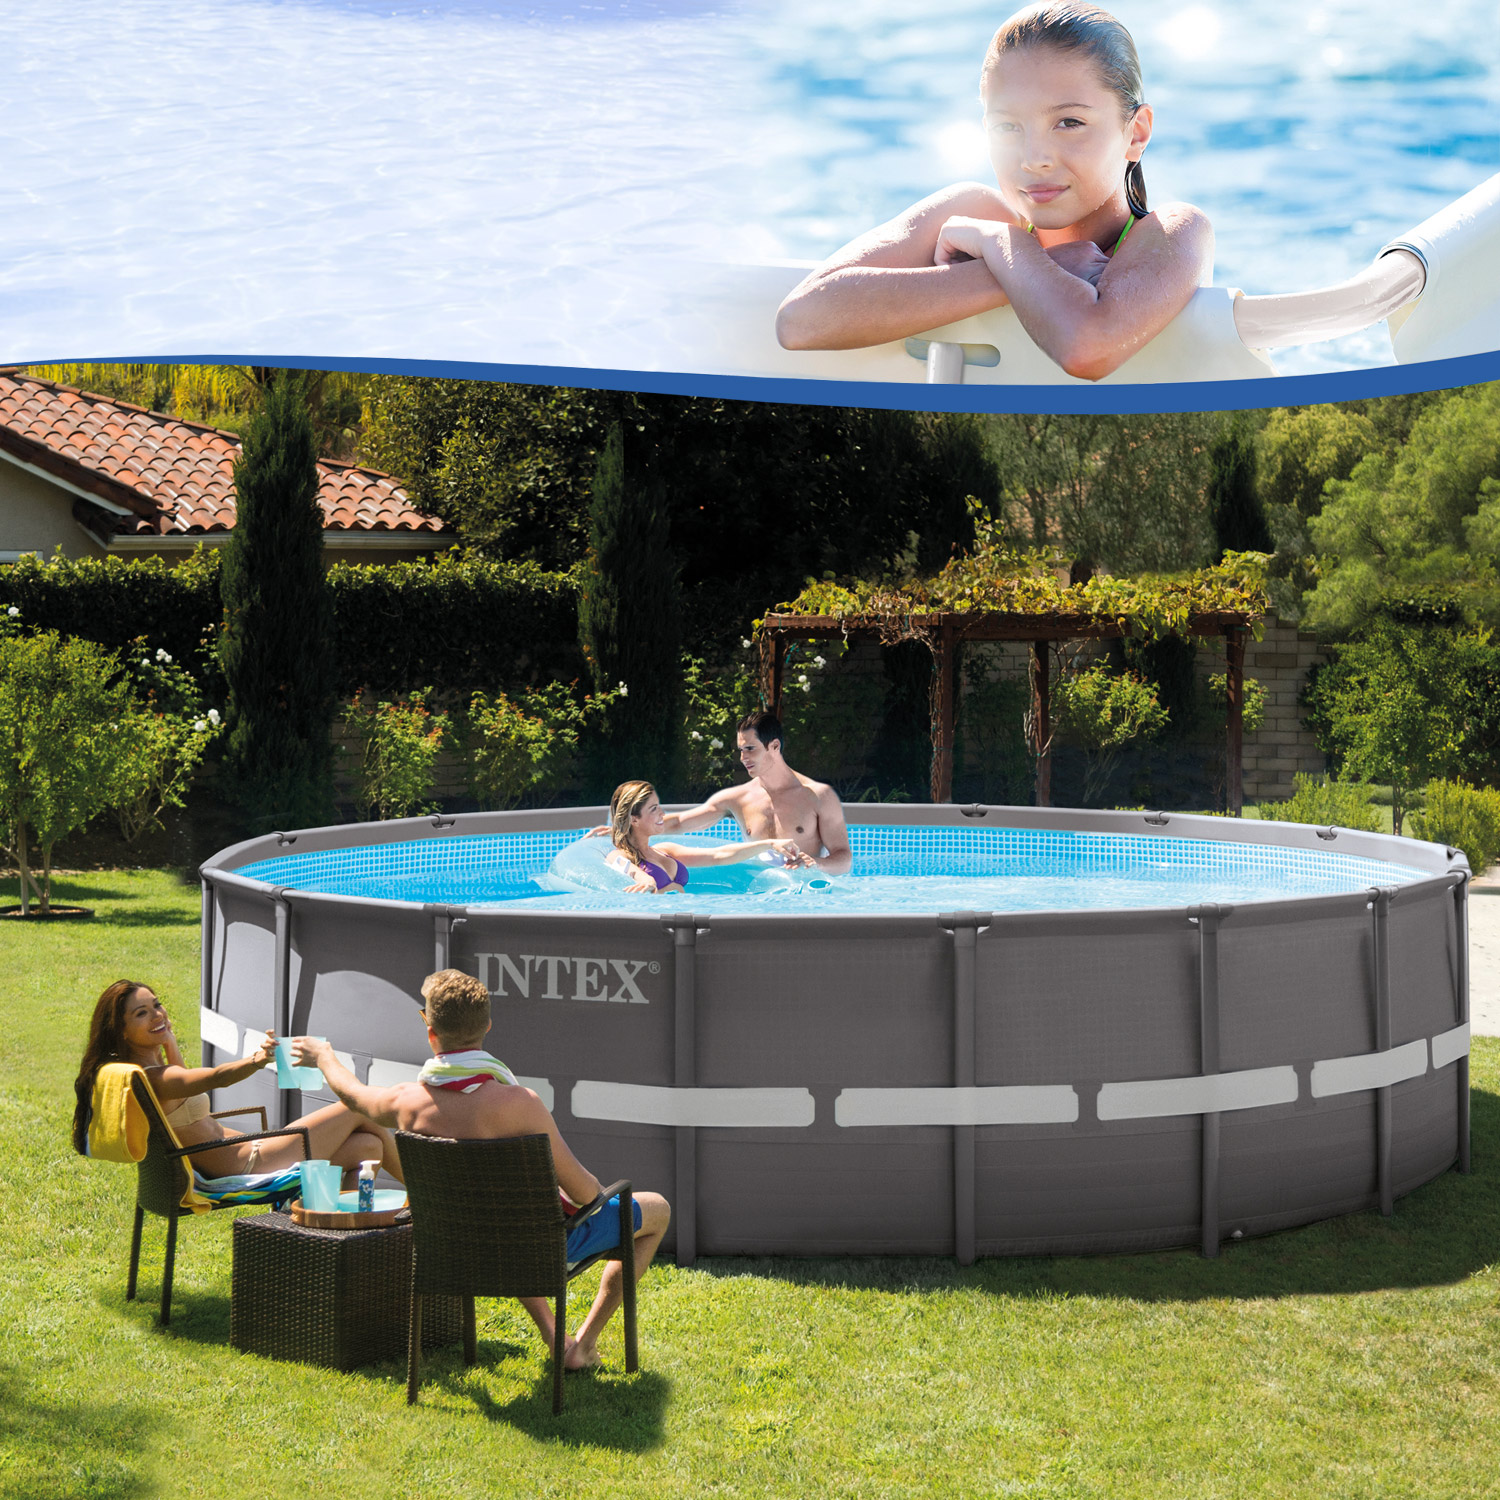 intex 488 132 set swimming pool frame stahlwandbecken. Black Bedroom Furniture Sets. Home Design Ideas